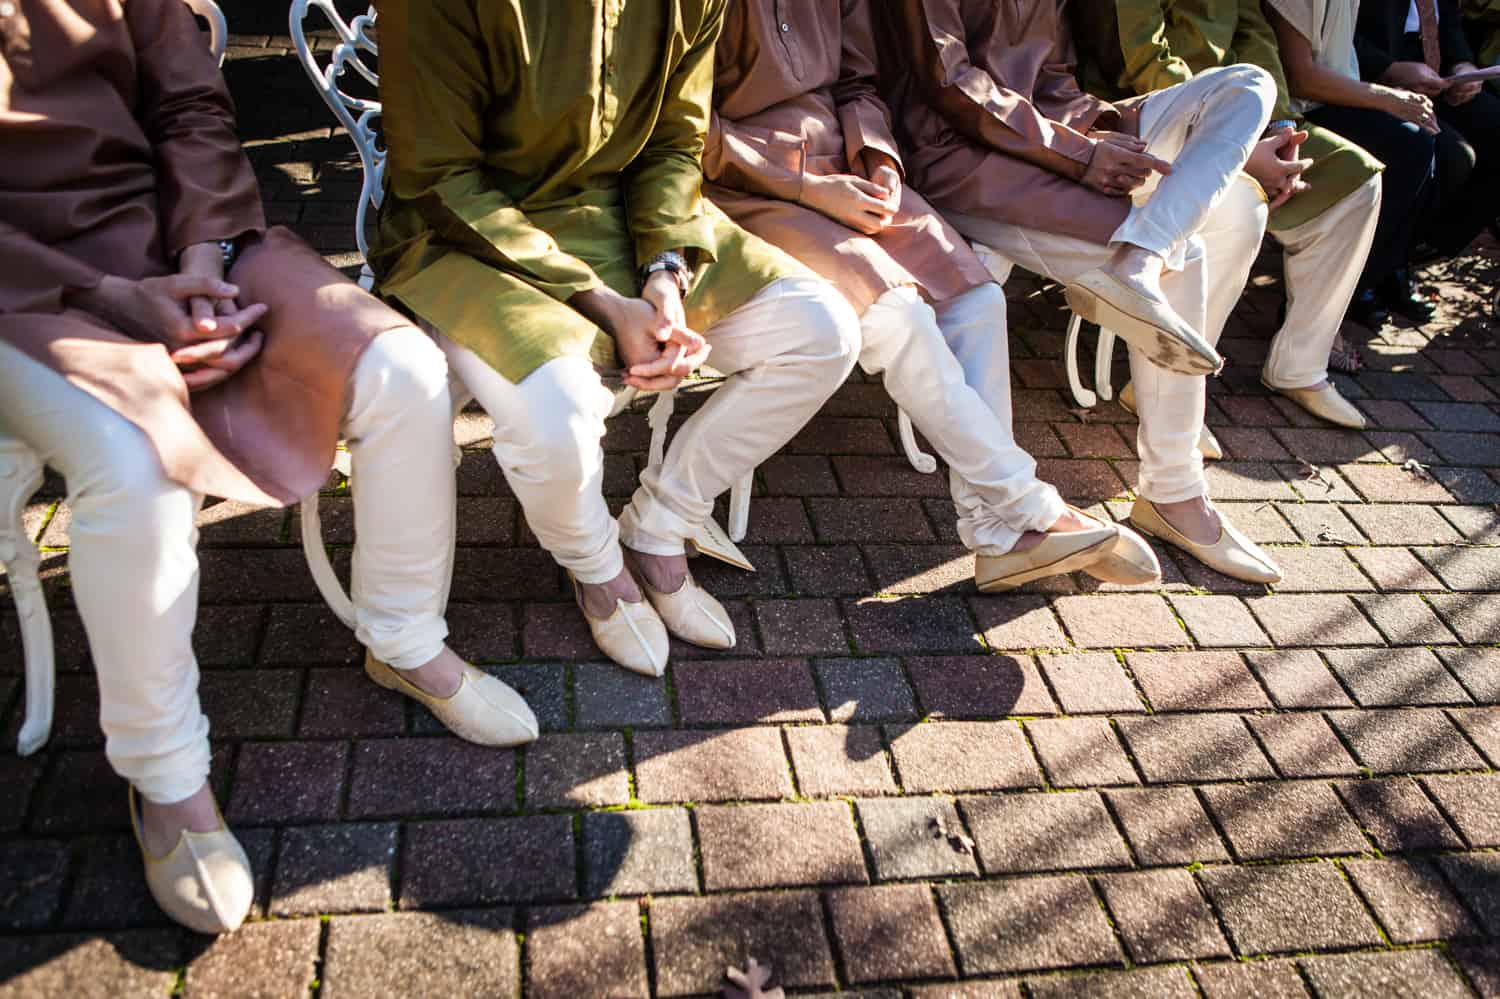 Close up on traditional Indian footwear of groomsmen